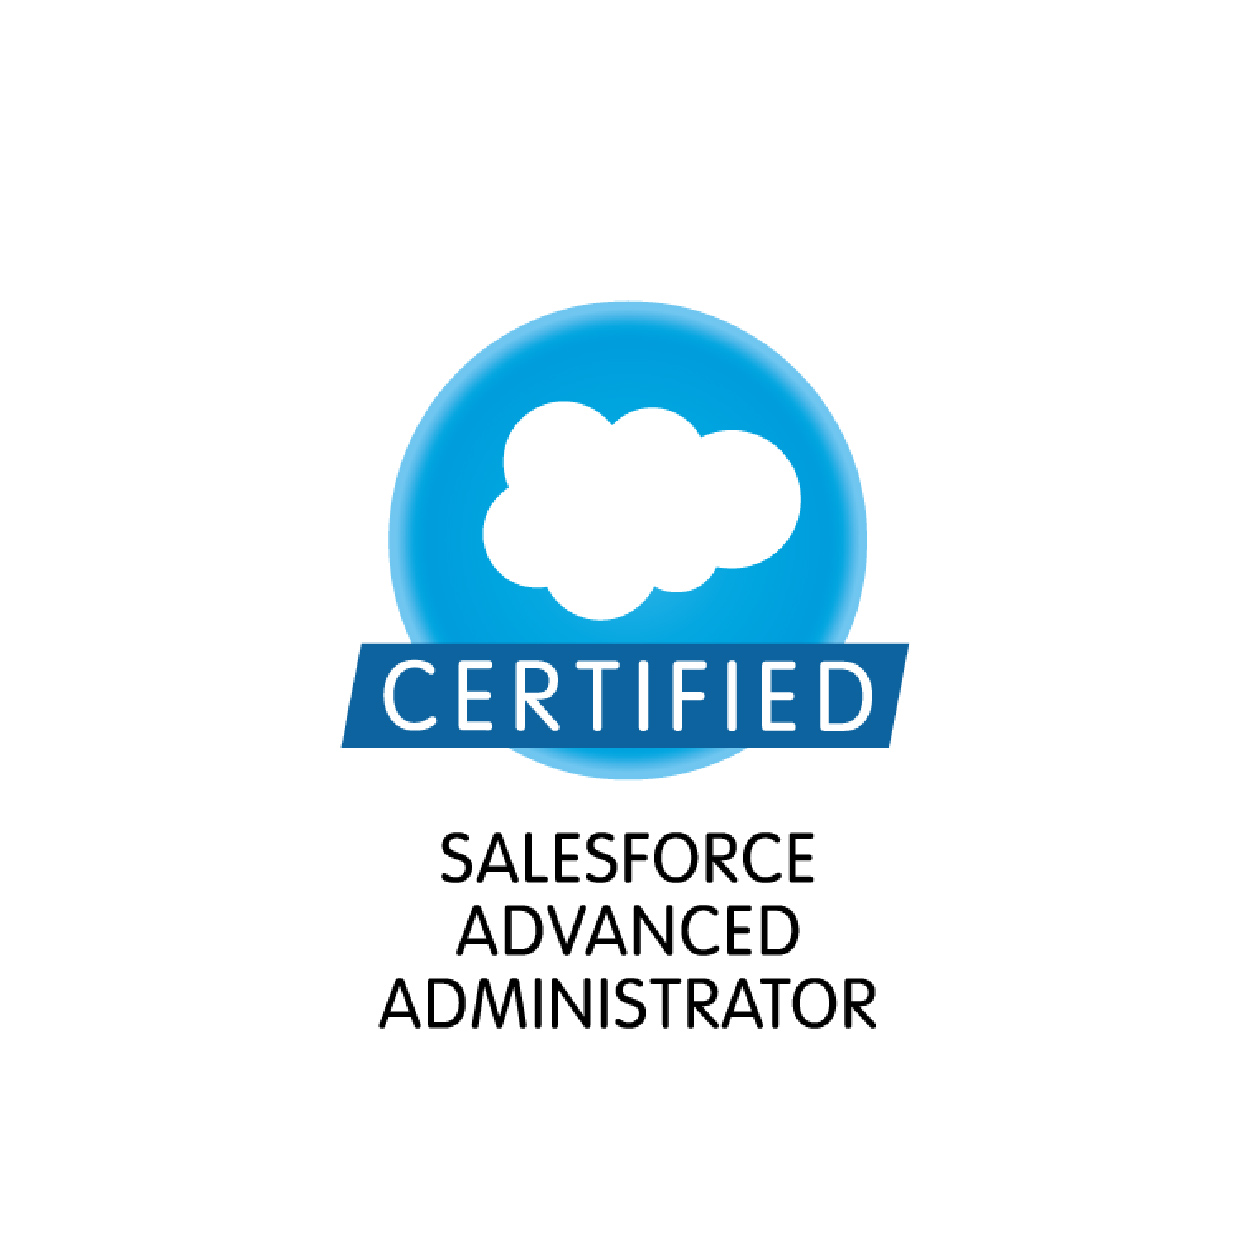 salesforce_certified-09.jpg